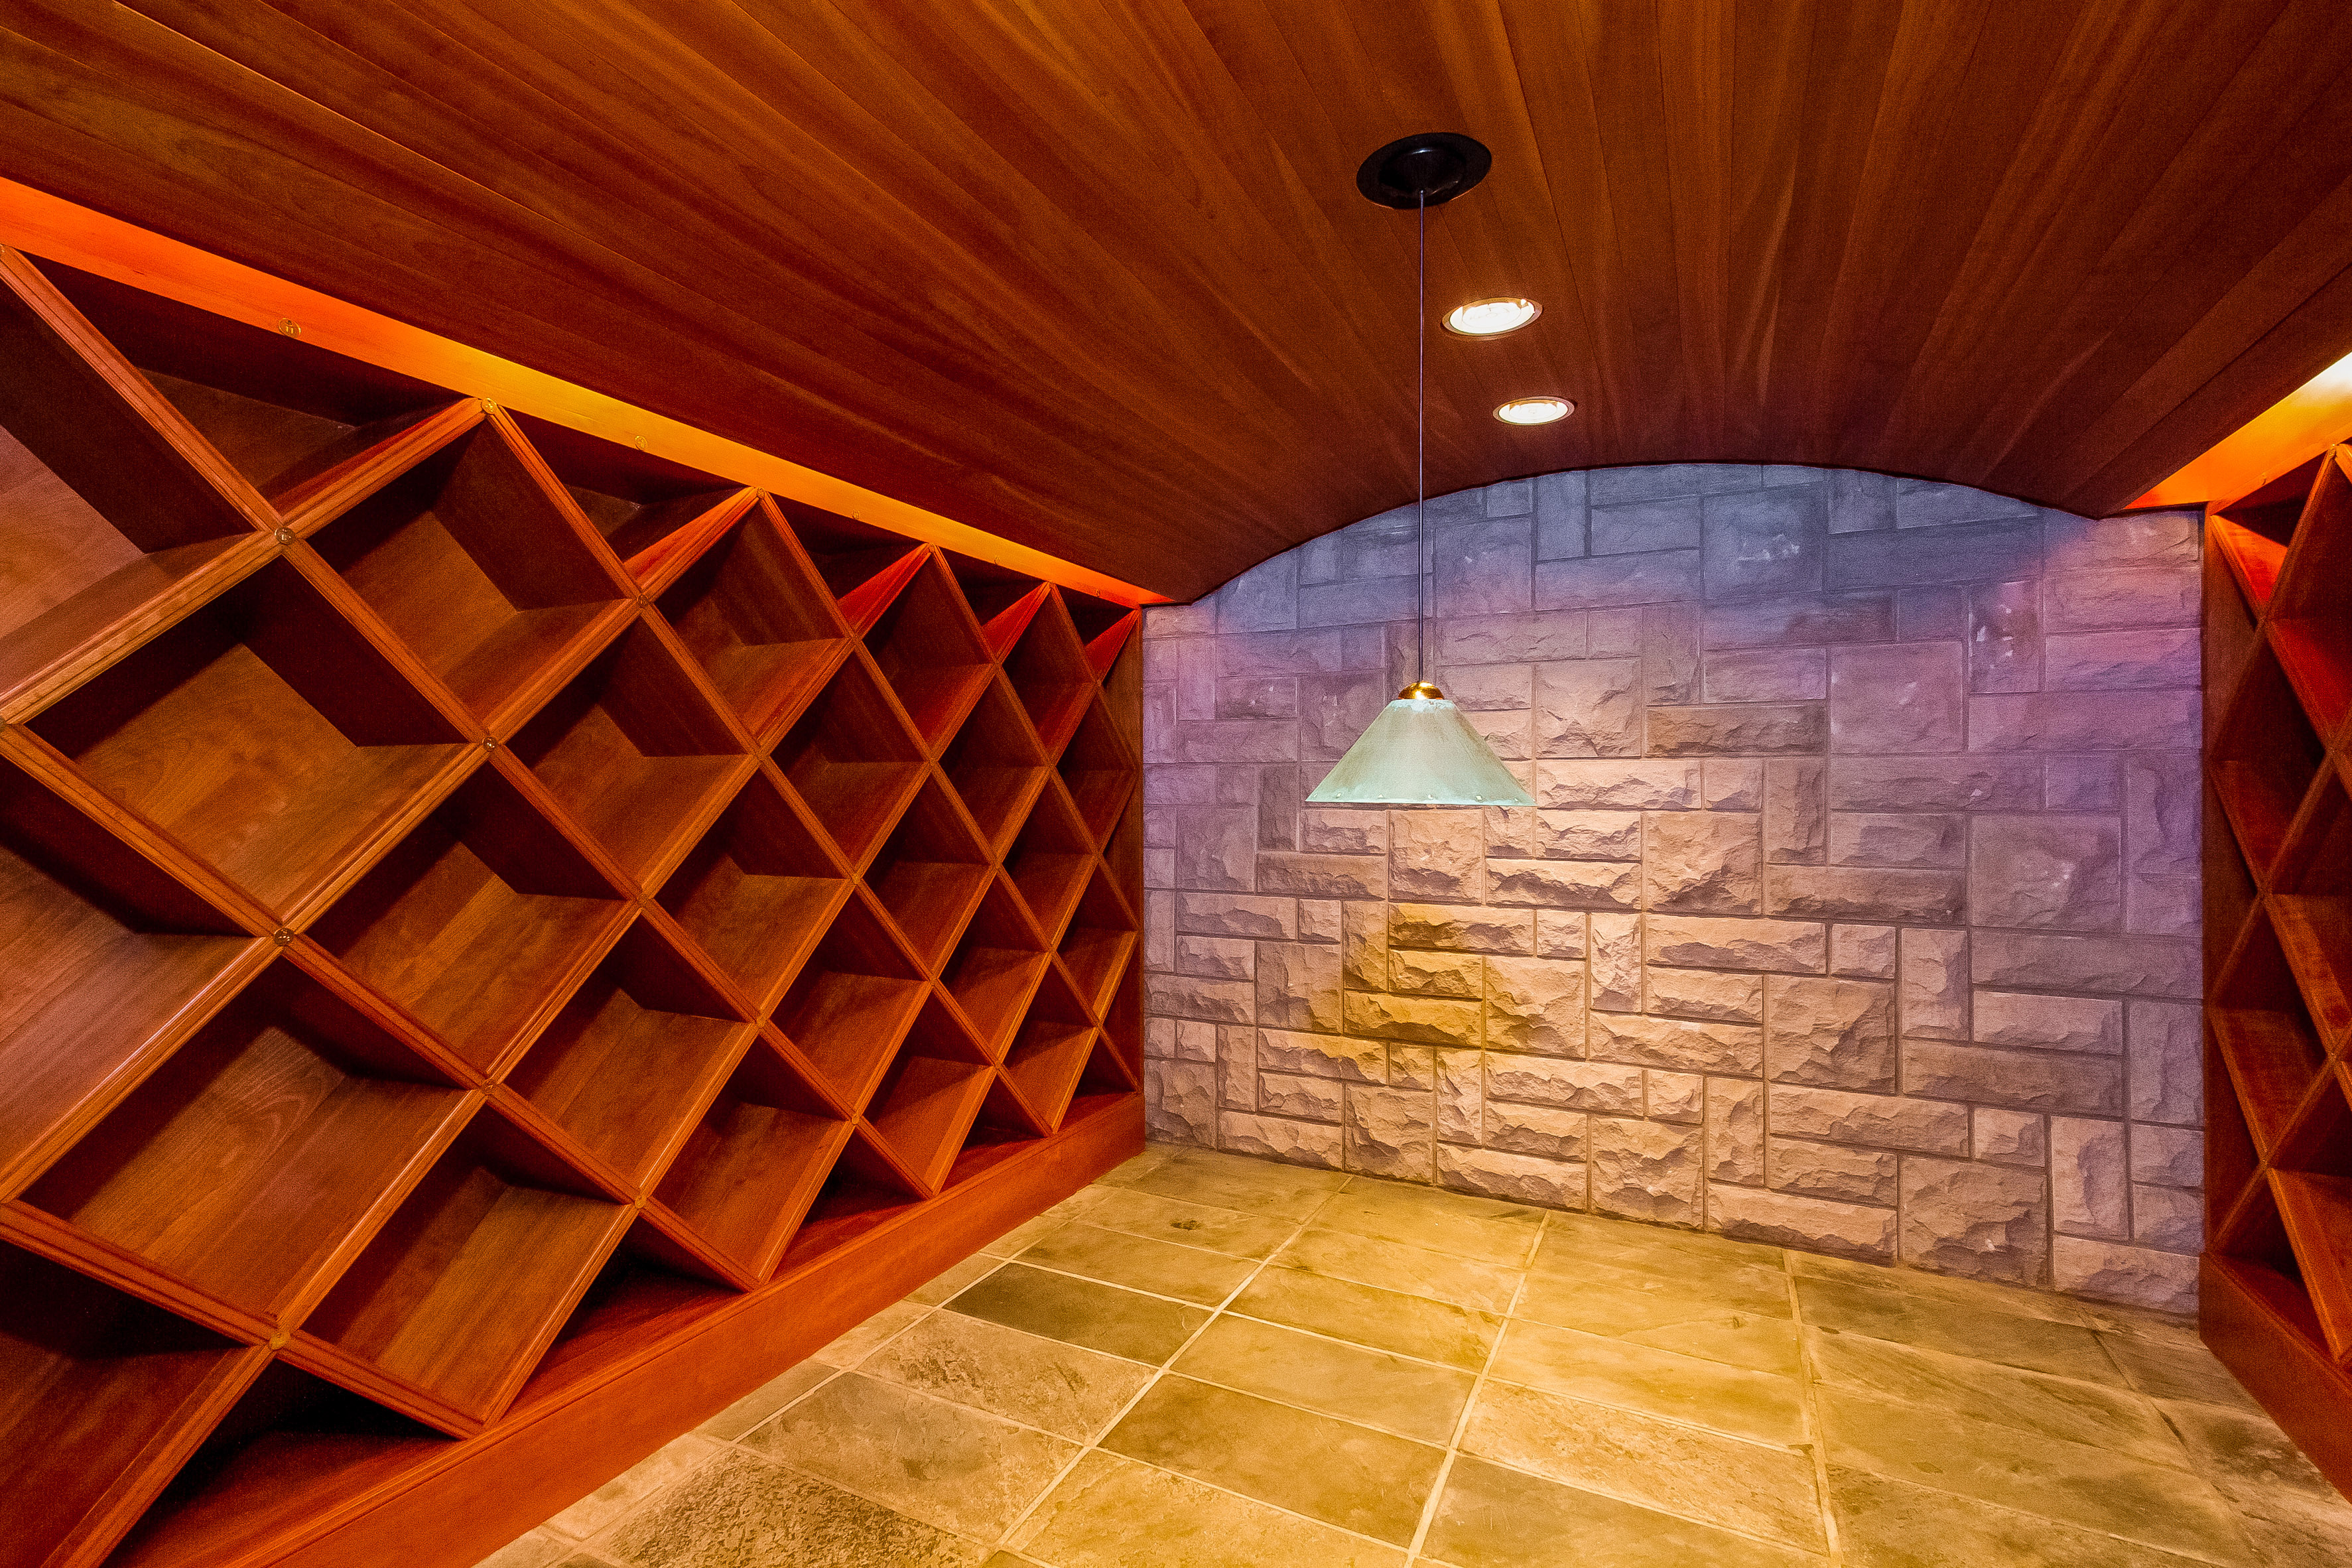 053-Wine_Cellar-4840853-large